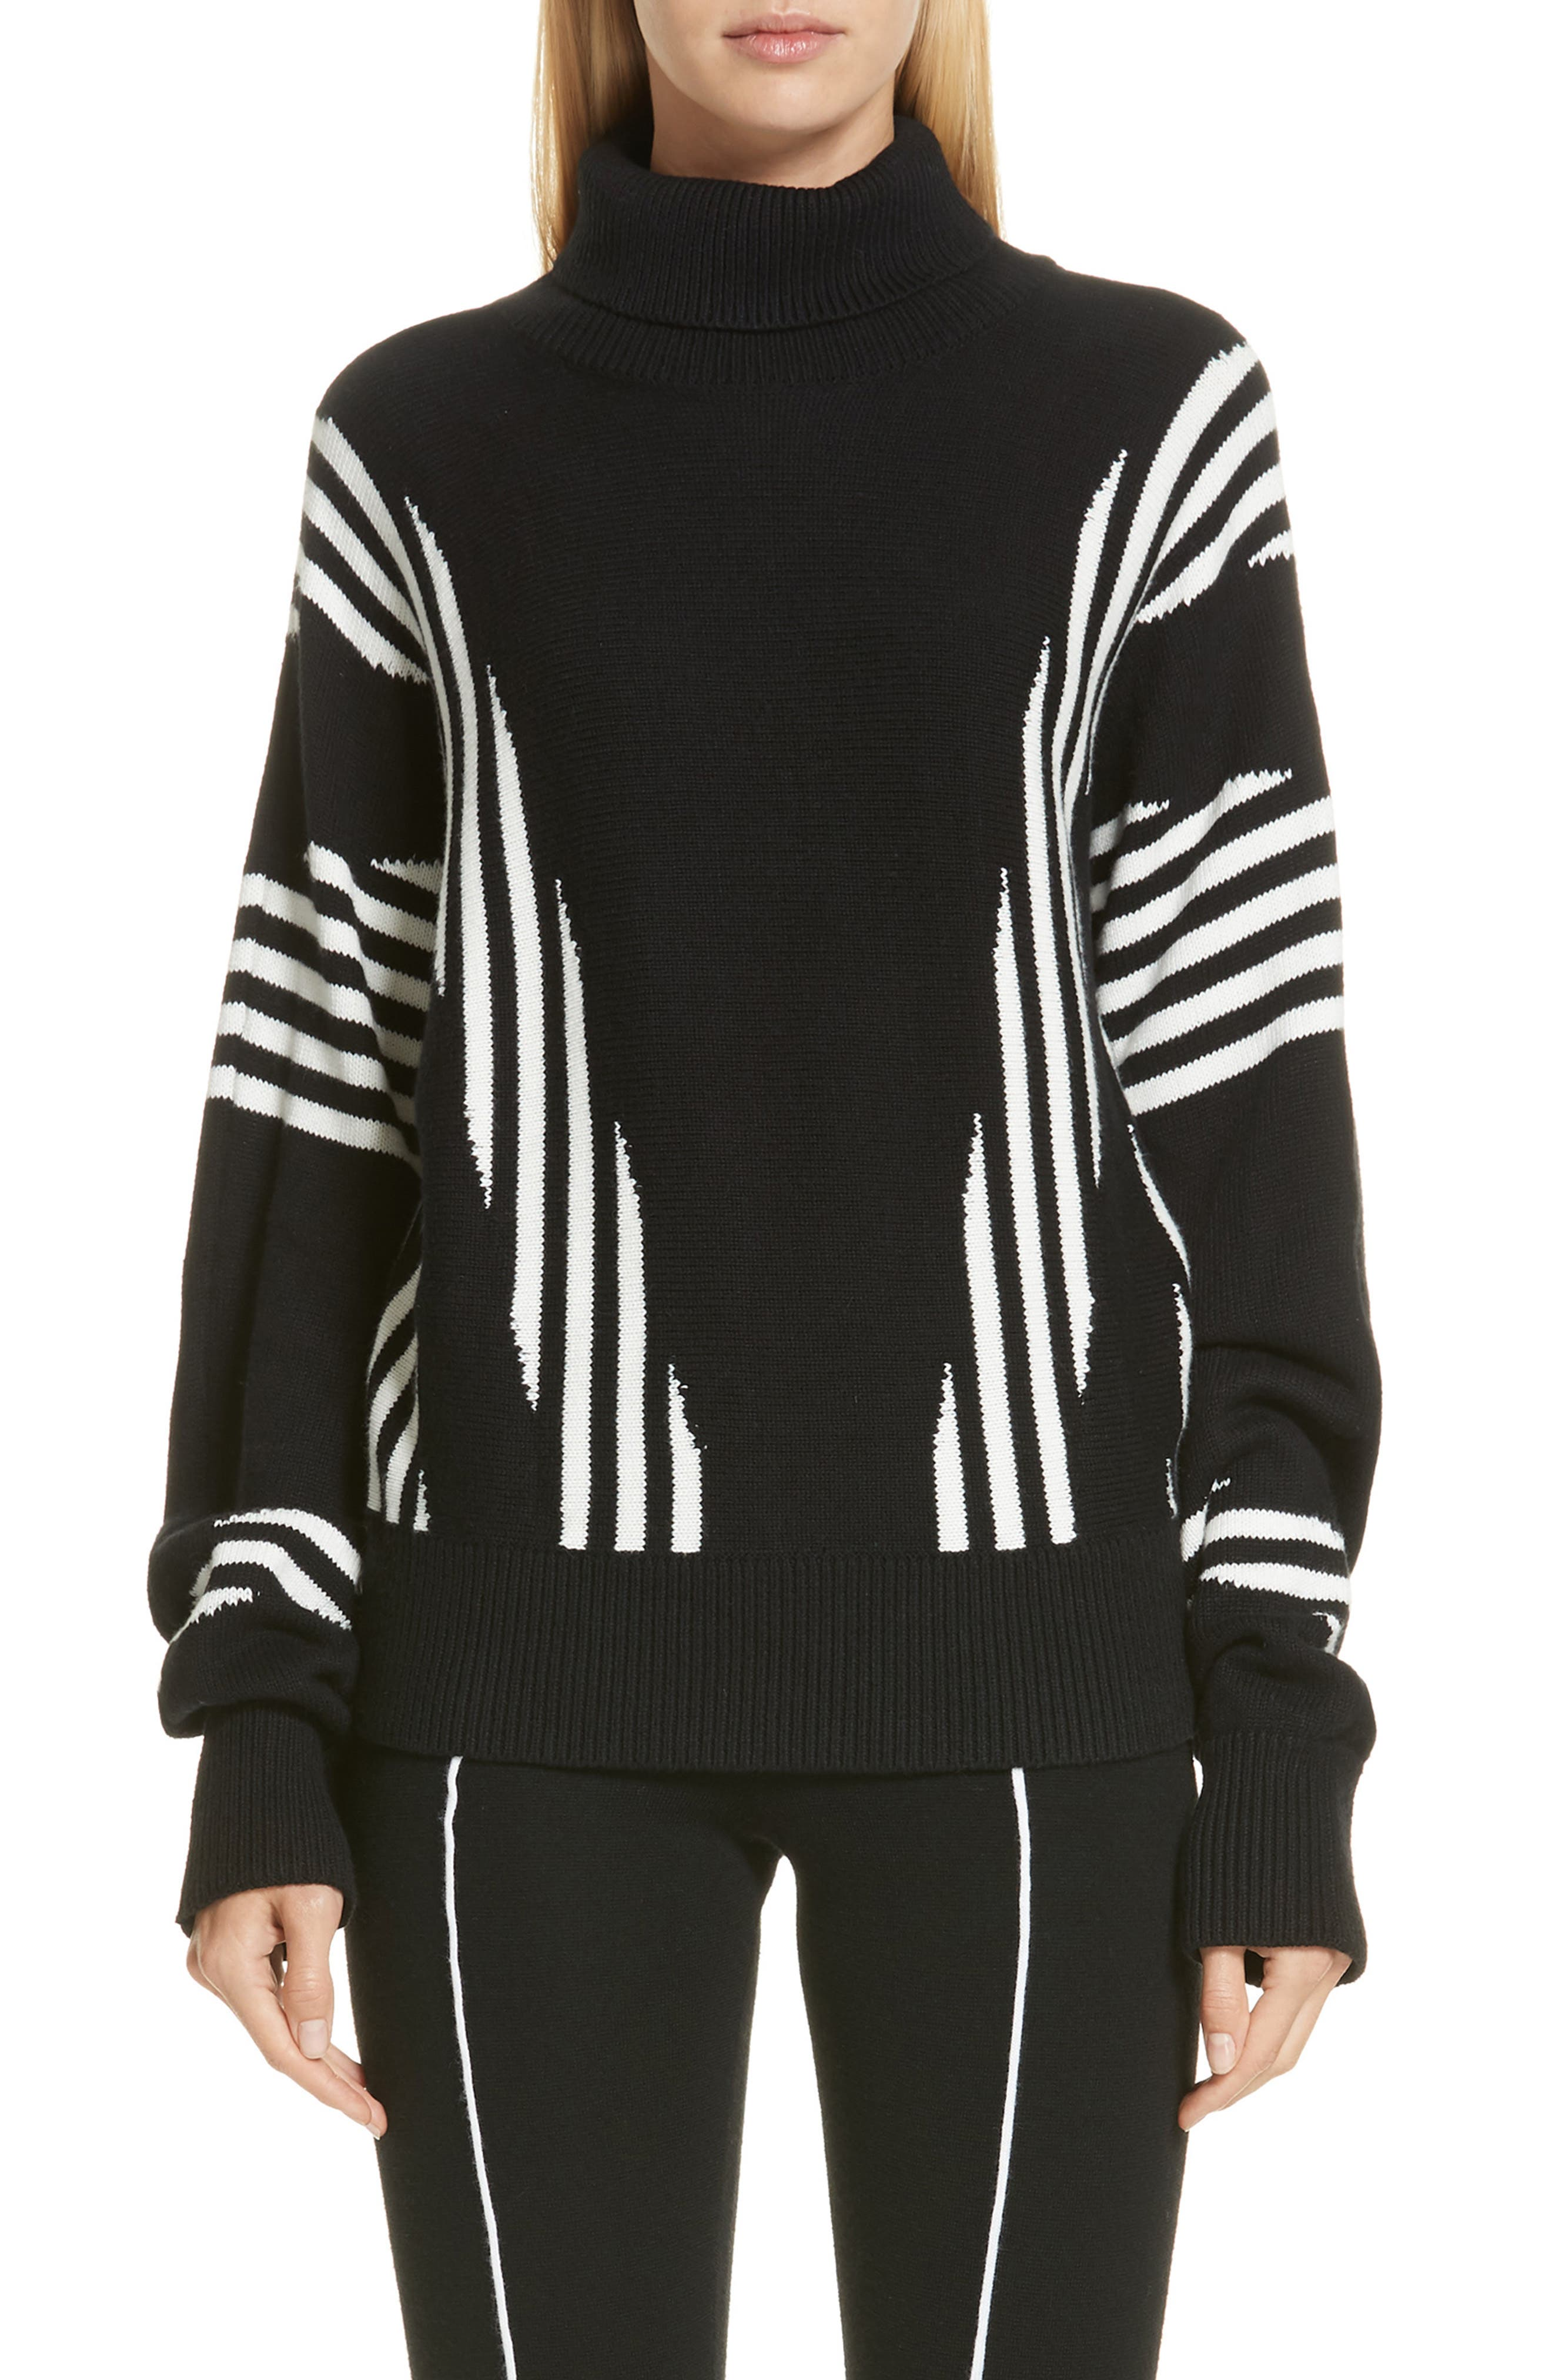 VICTOR GLEMAUD Long Sleeve Cashmere Knit Pullover in Black